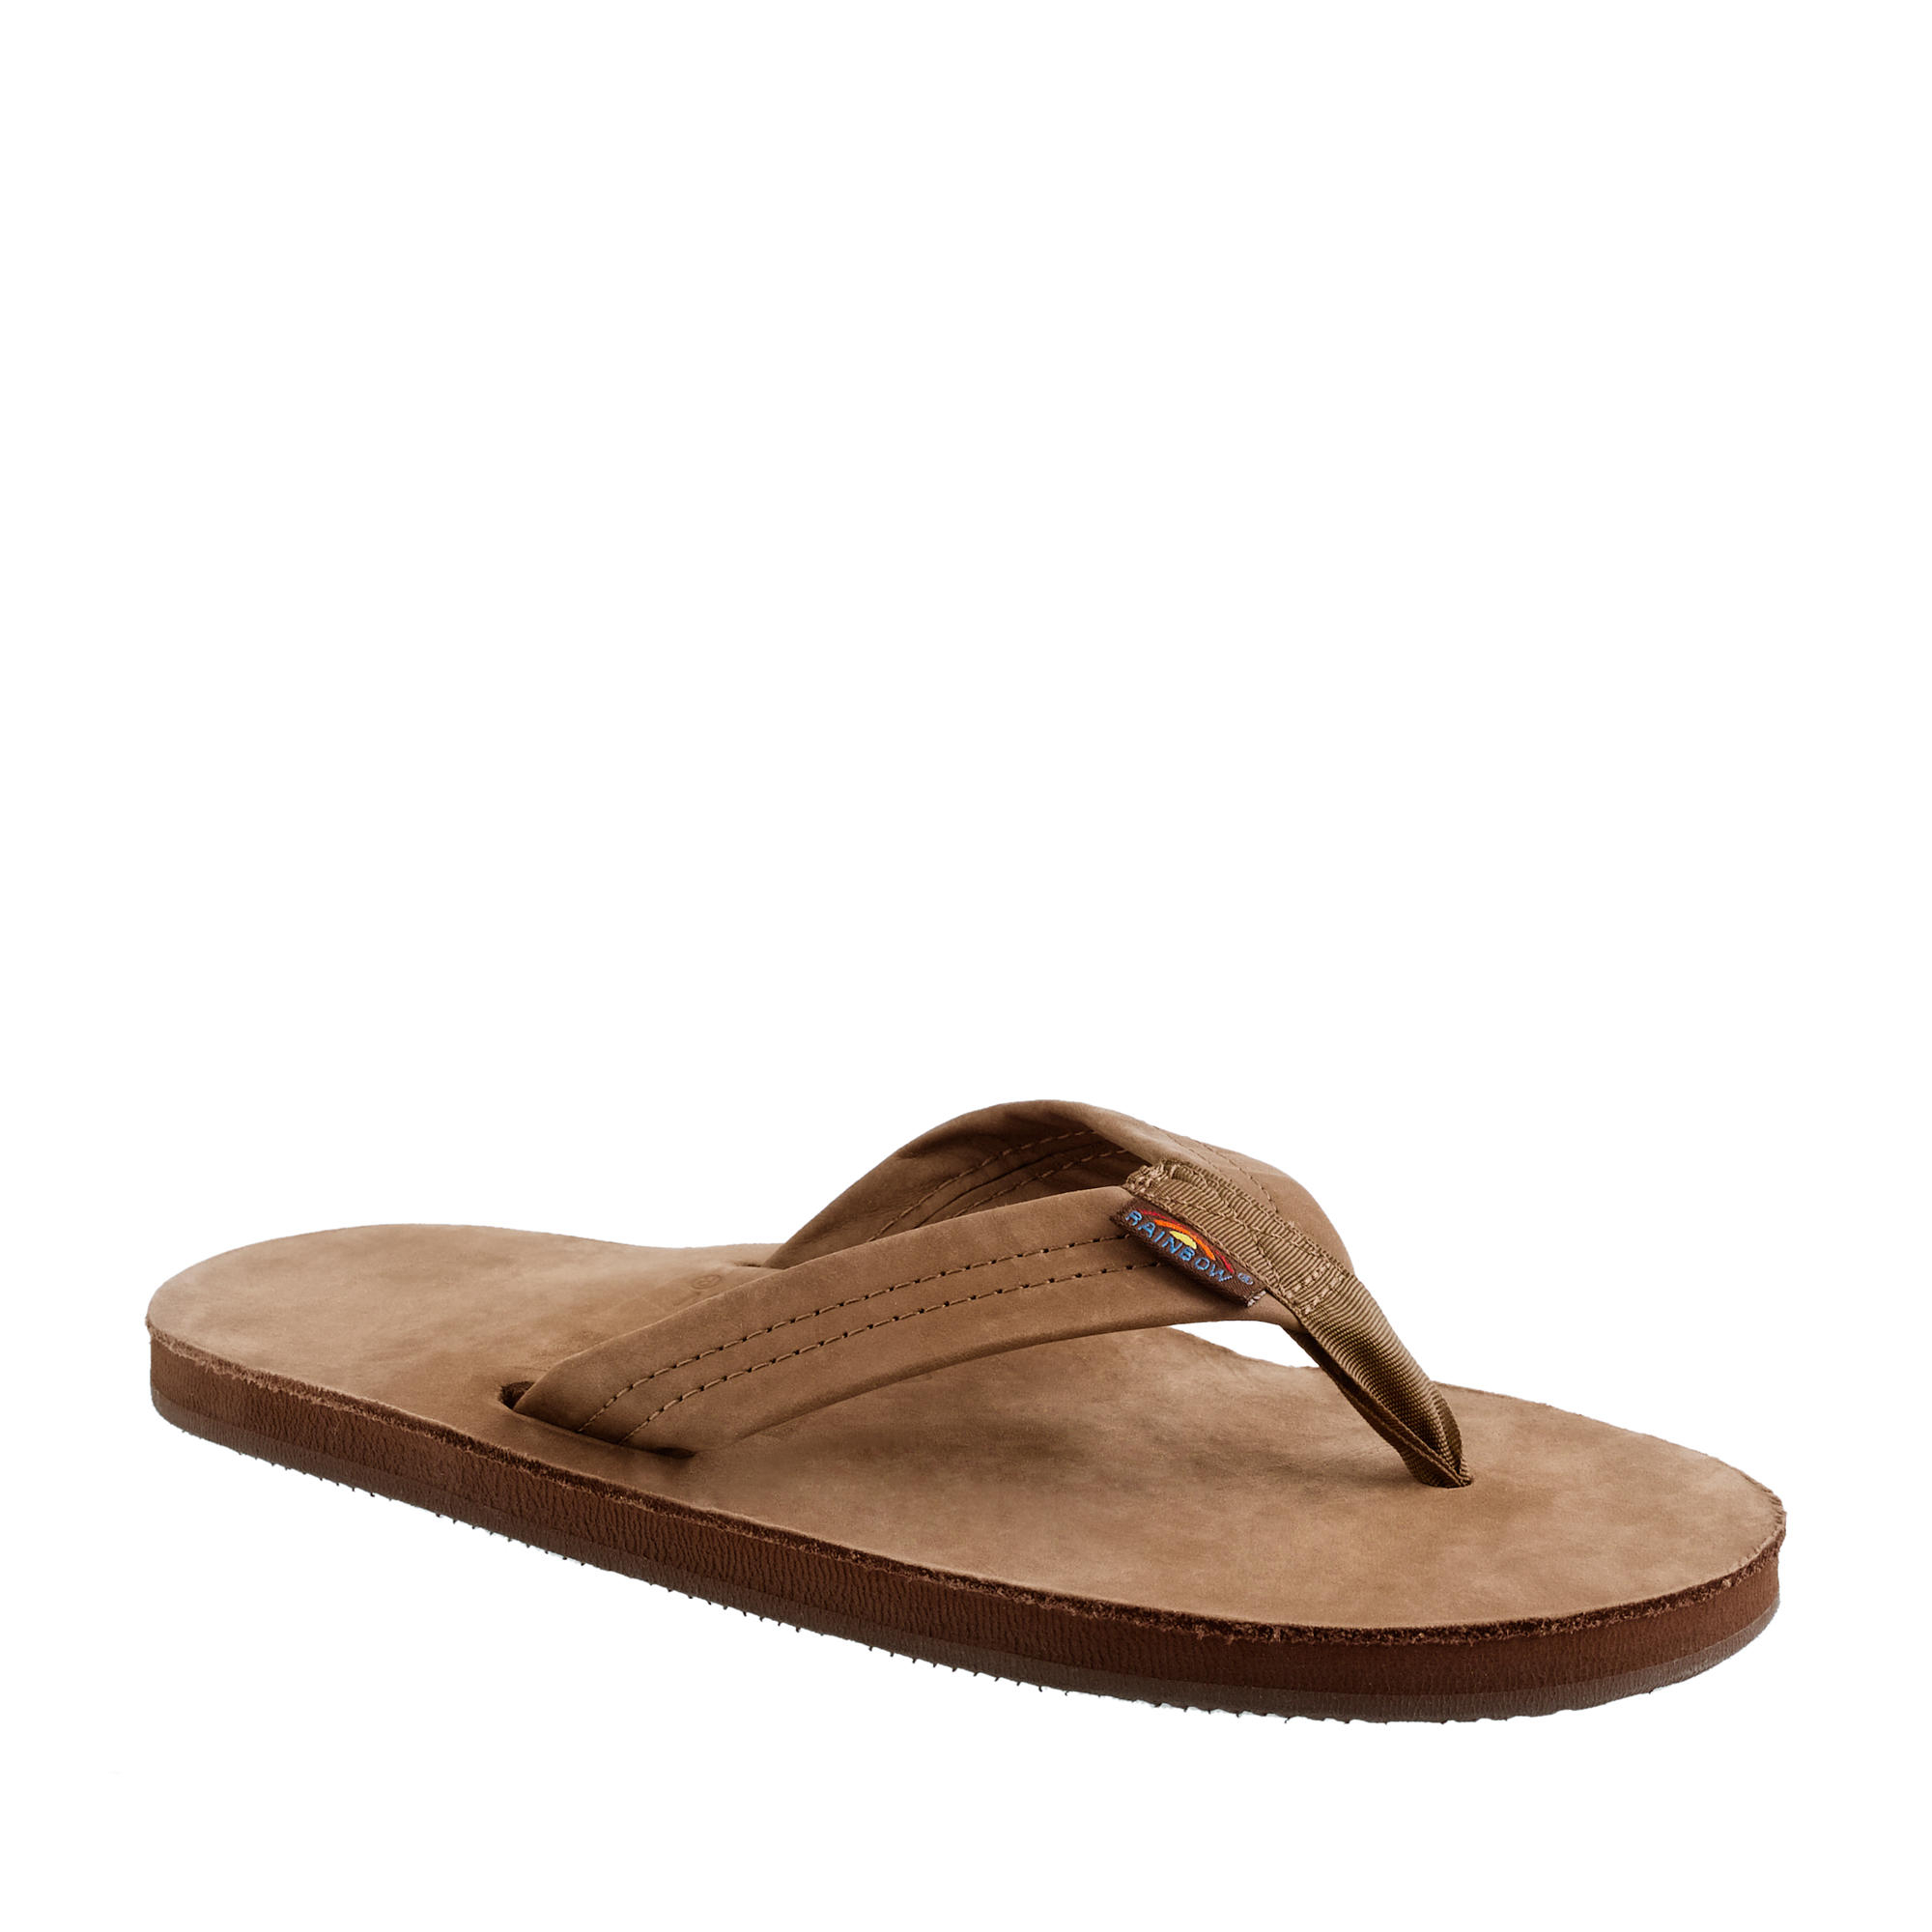 J.crew Rainbow Leather Flip-flops in Brown for Men | Lyst Rainbow Sandals